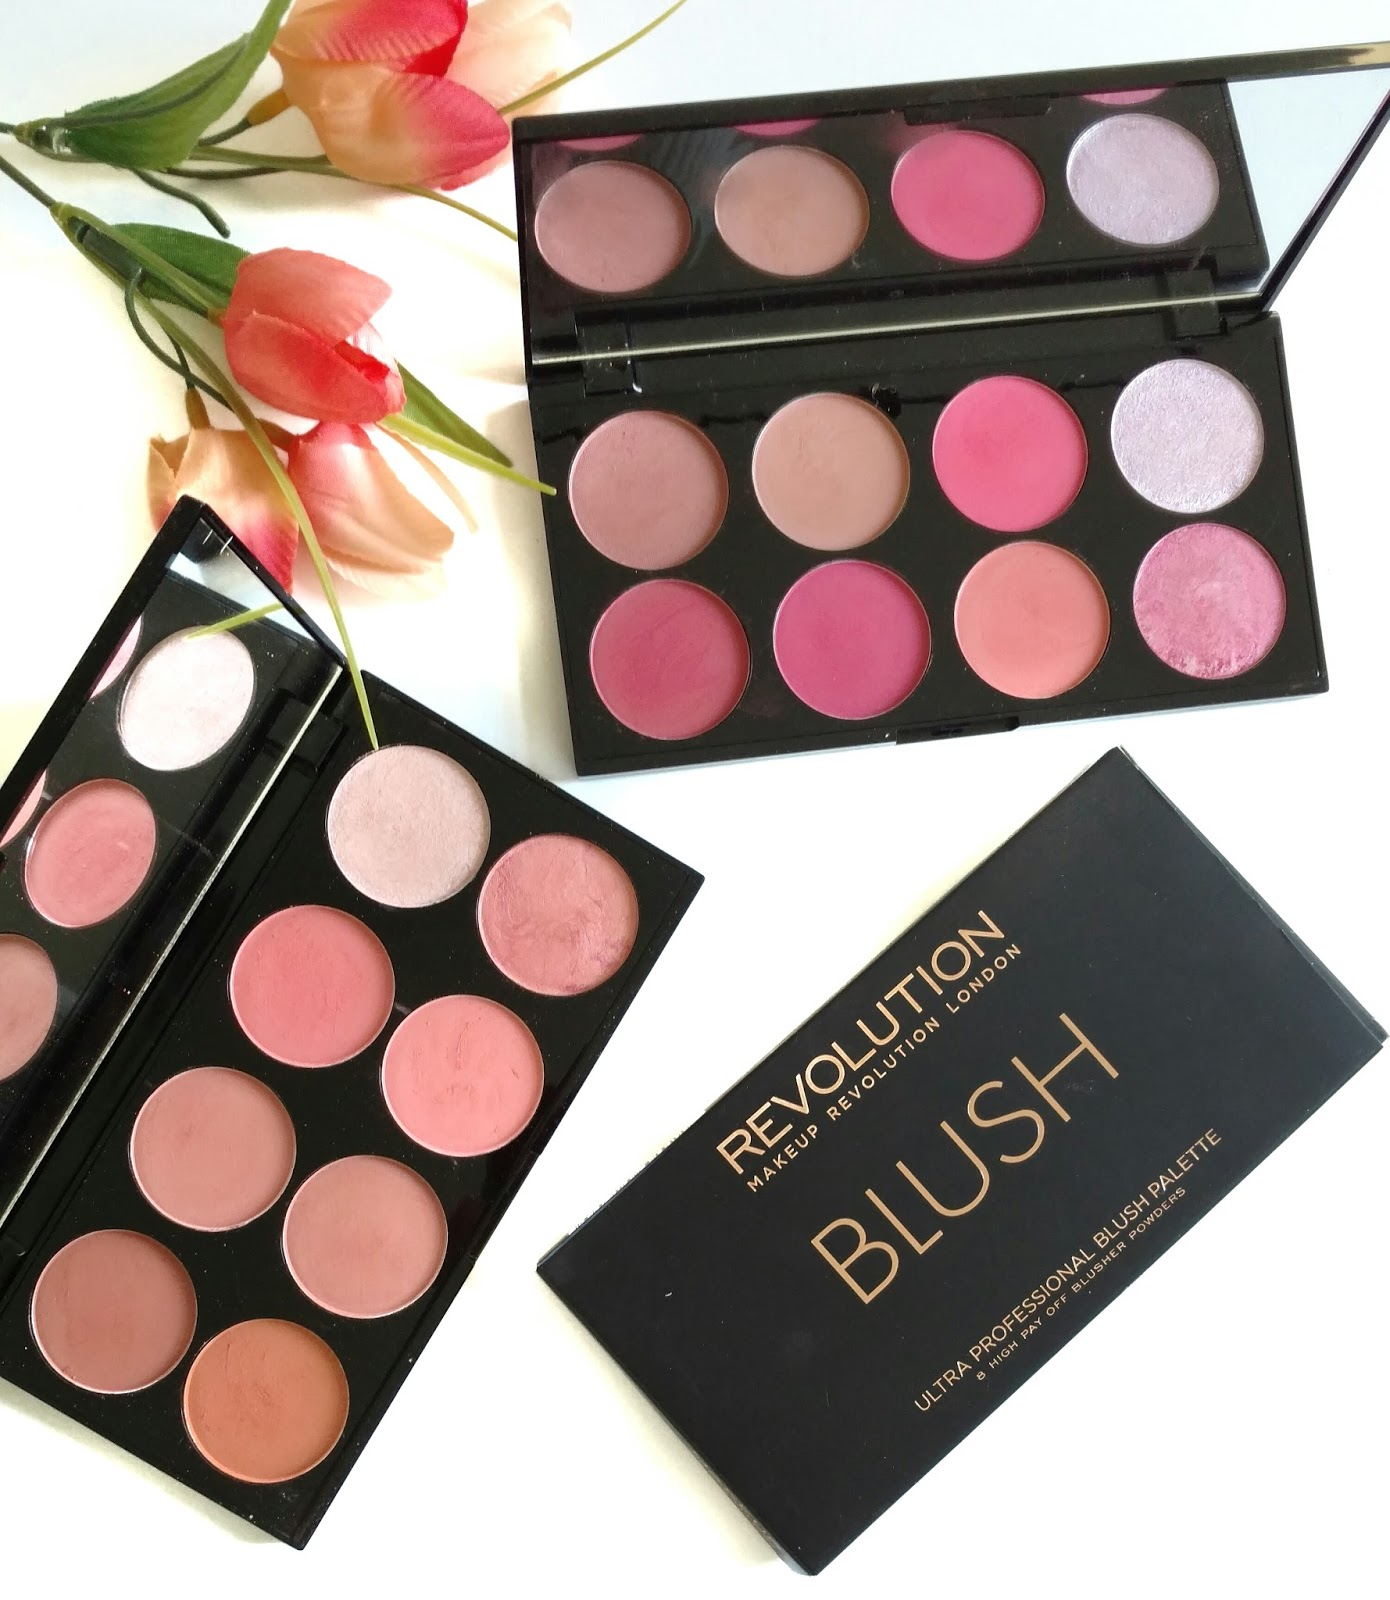 Makeup Revolution Ultra Blush Palettes In Hot Spice Sugar And